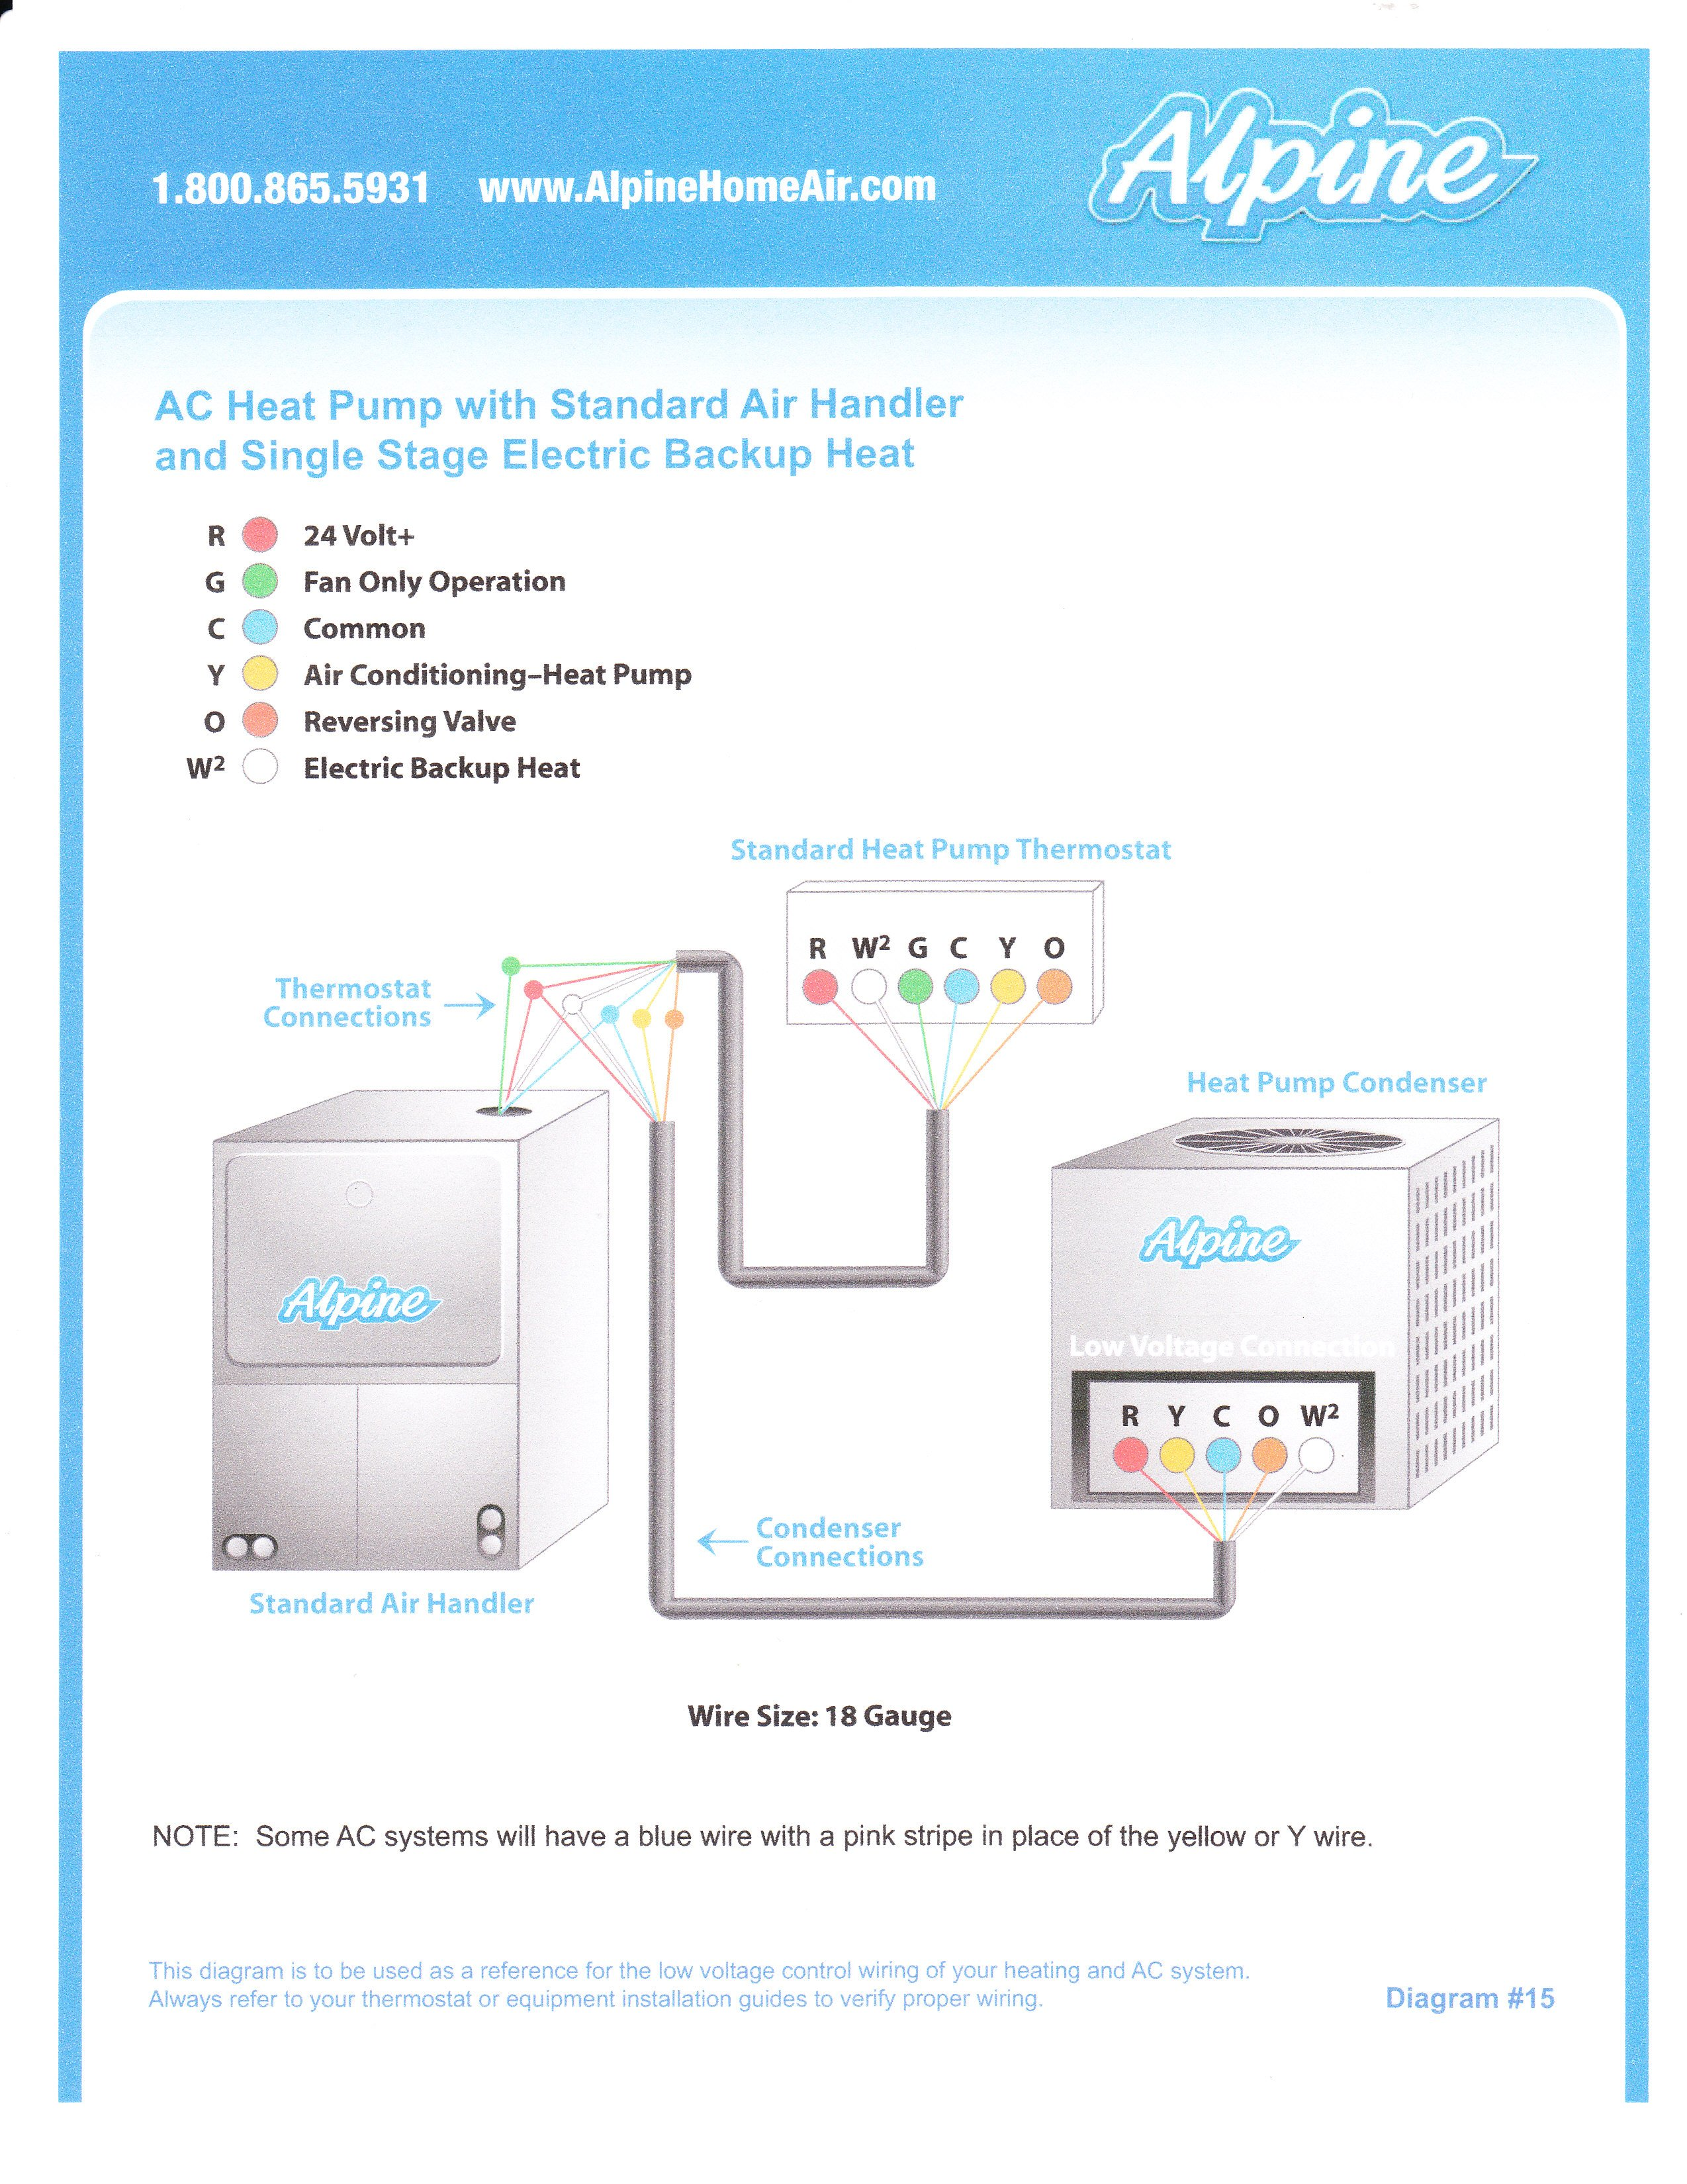 American Standard Thermostat Wiring Diagram 650 Simple Honeywell Oil Furnace Diagrams Auxillary Transformer Library Boiler